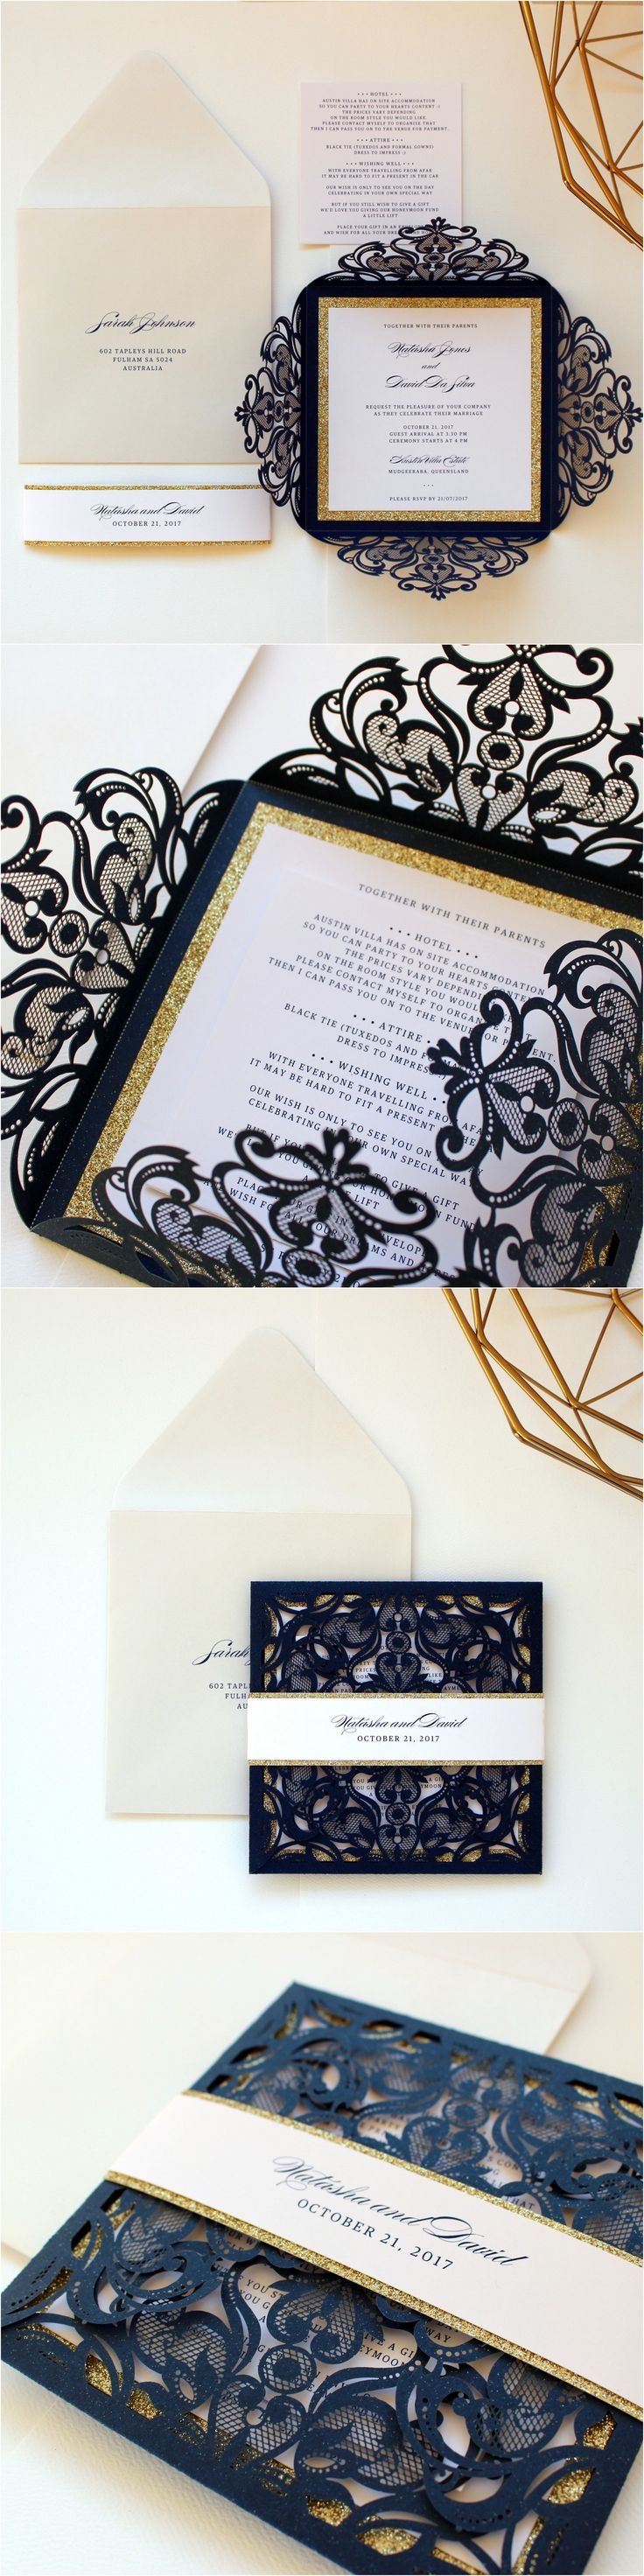 Navy and Gold Wedding Invitation Belly Bands, Navy Blue Wedding Invitations Australia, Navy Wedding Invitation, Glitter Invitation